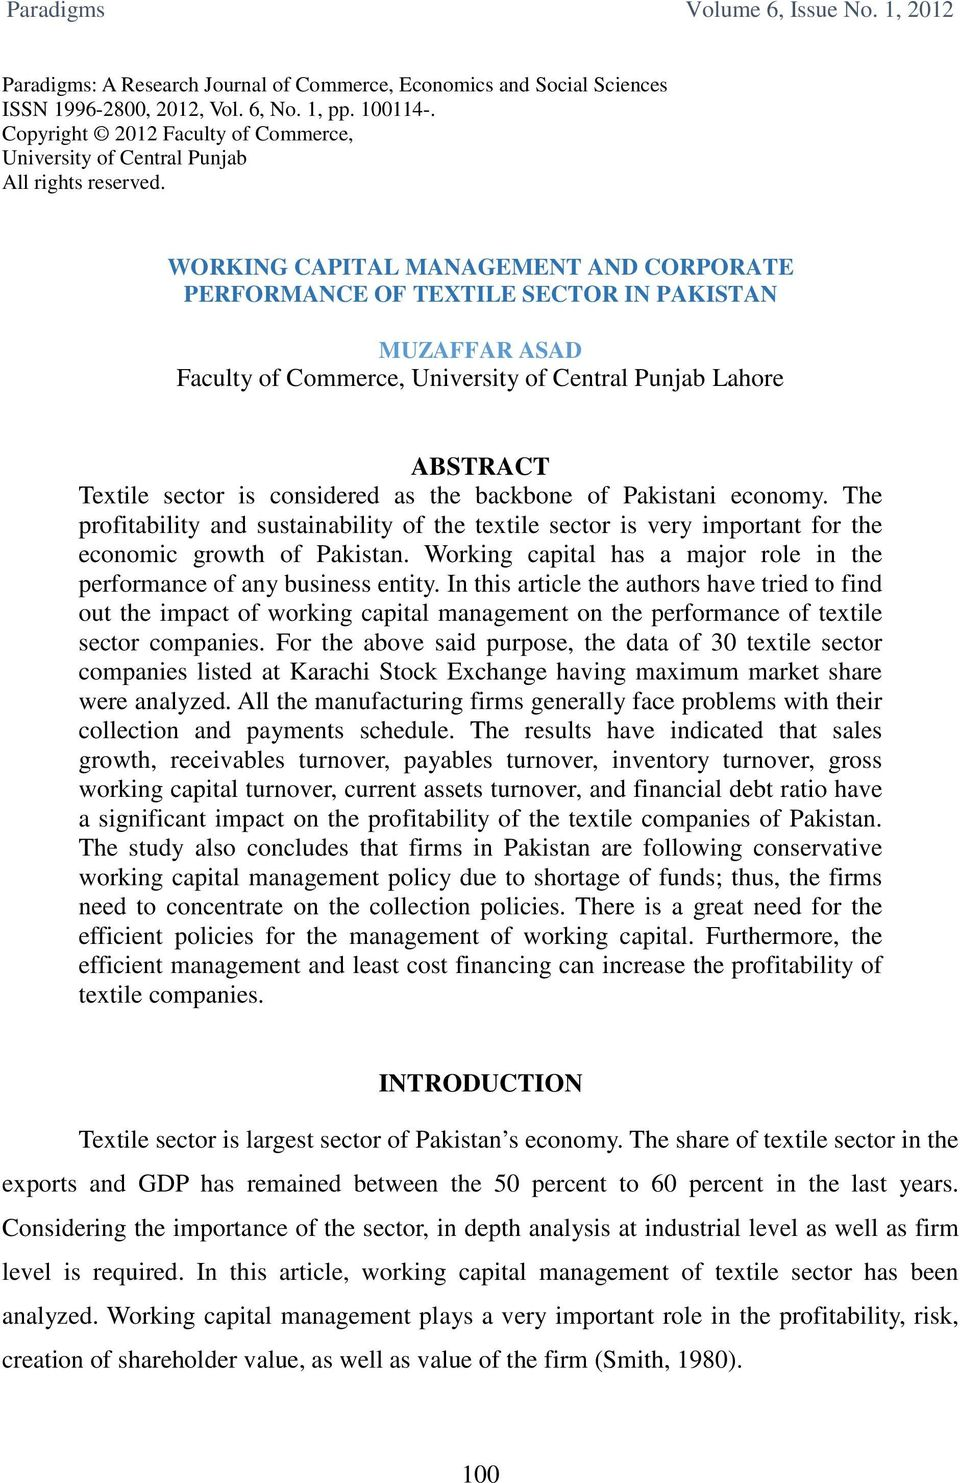 WORKING CAPITAL MANAGEMENT AND CORPORATE PERFORMANCE OF TEXTILE SECTOR IN PAKISTAN MUZAFFAR ASAD Faculty of Commerce, University of Central Punjab Lahore ABSTRACT Textile sector is considered as the